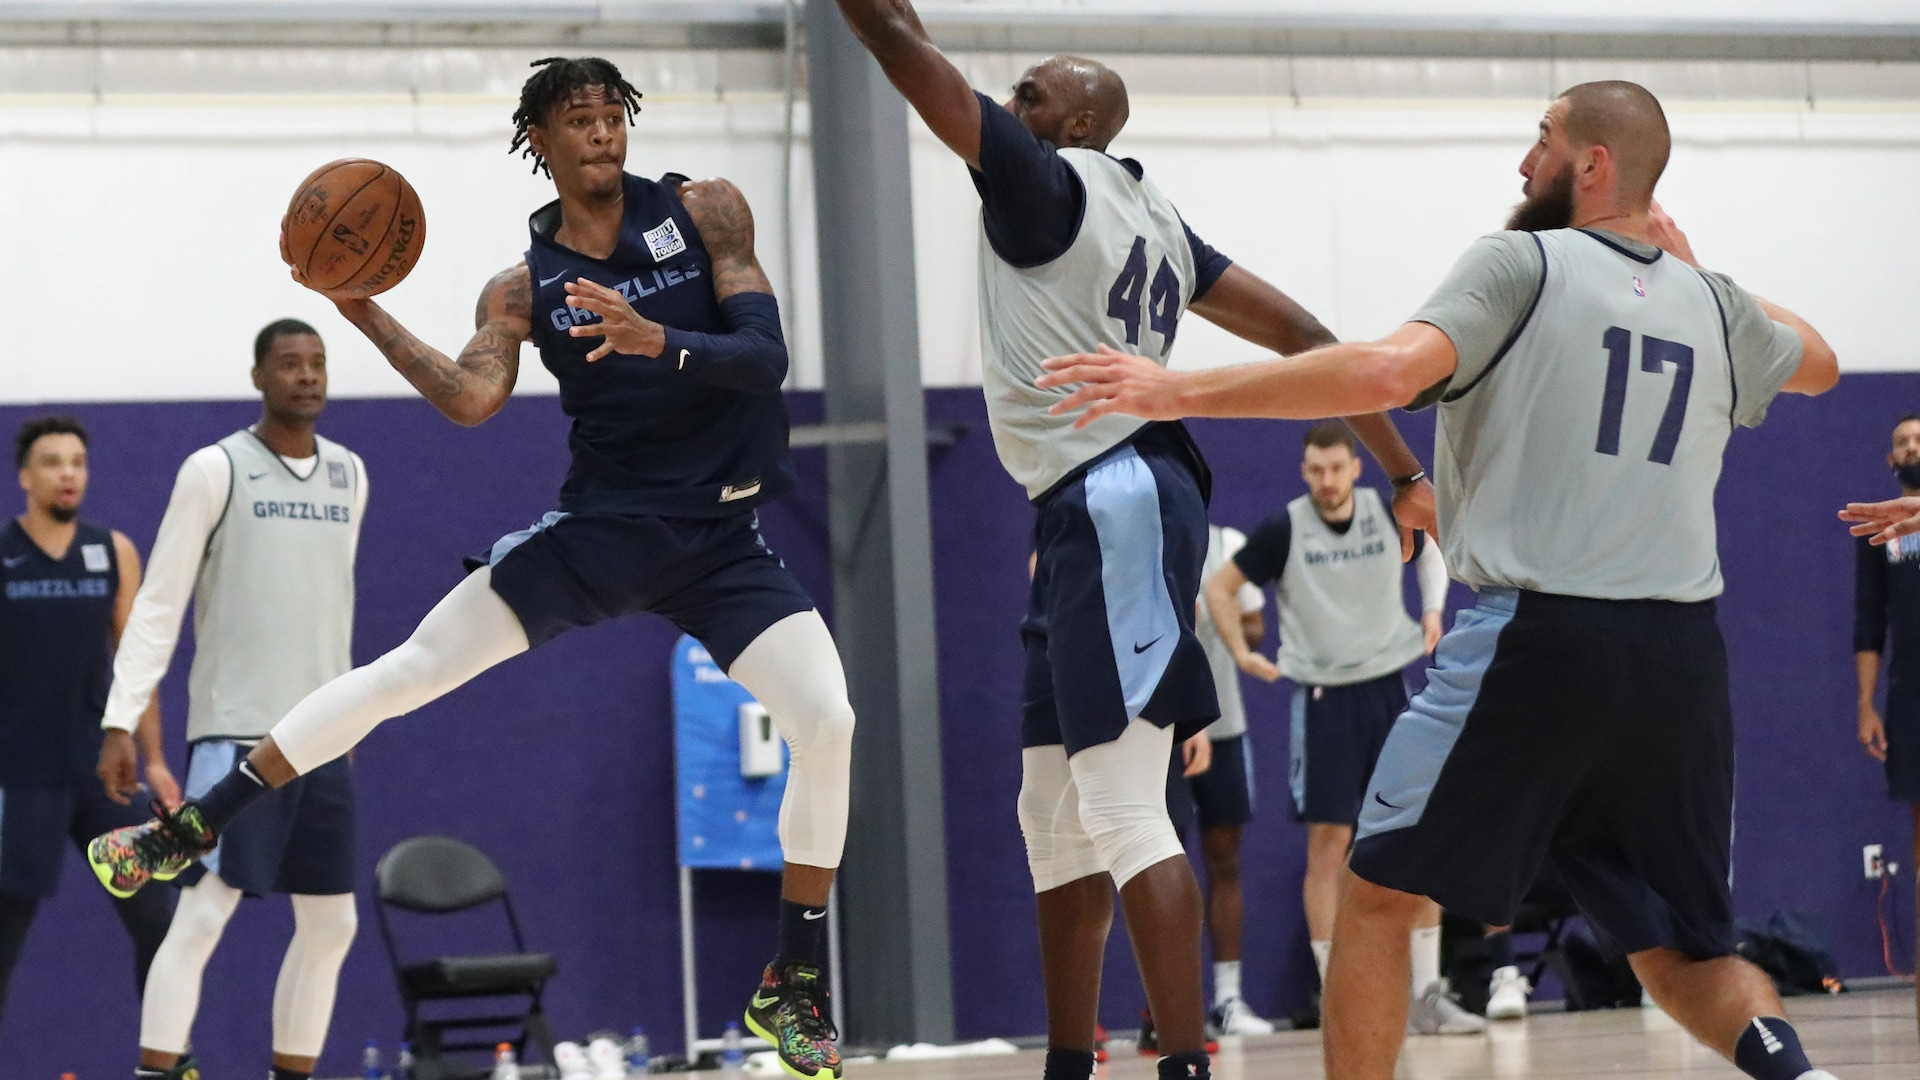 Feeling sting of disrespect, Grizzlies out to prove worth in Orlando